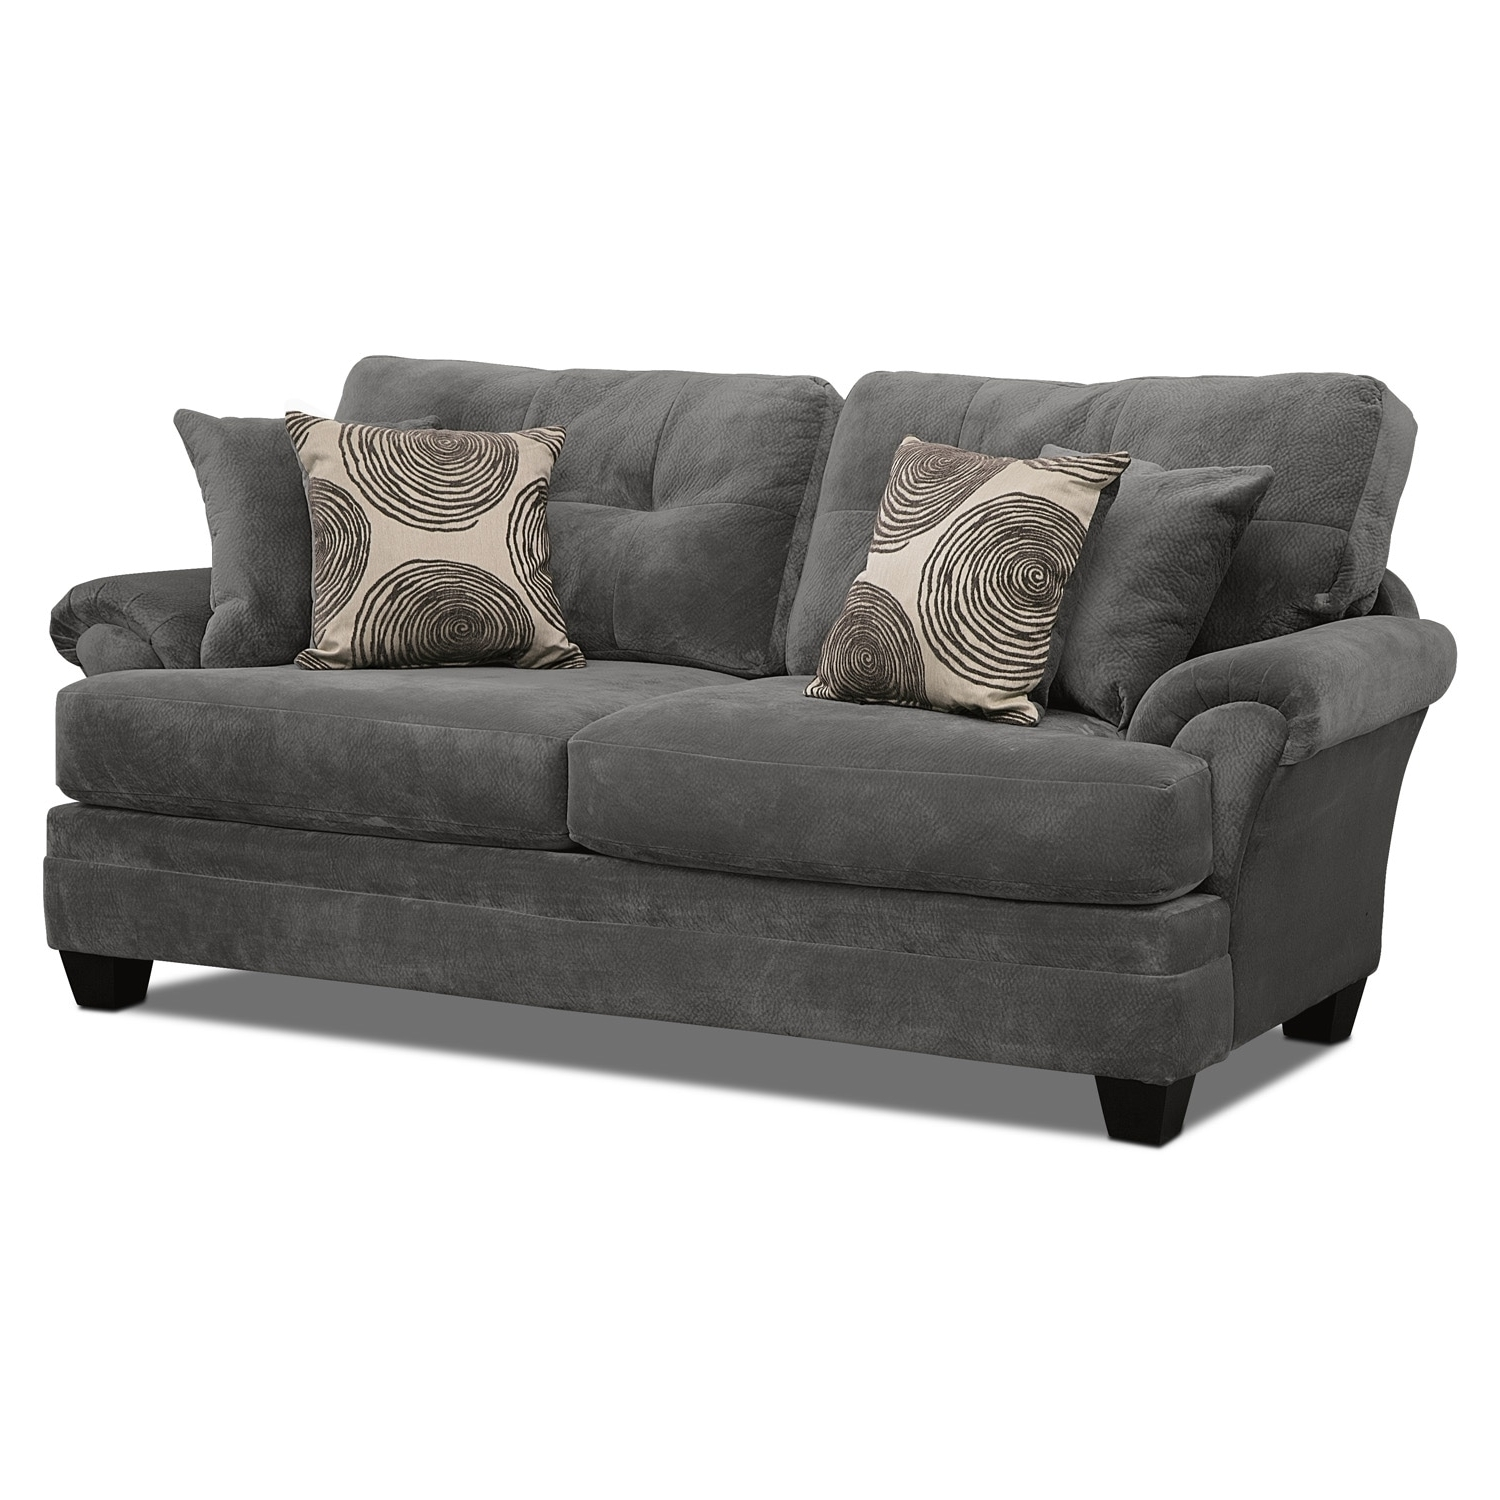 Jacksonville Nc Sectional Sofas Throughout Most Up To Date Sofas & Couches (View 9 of 20)